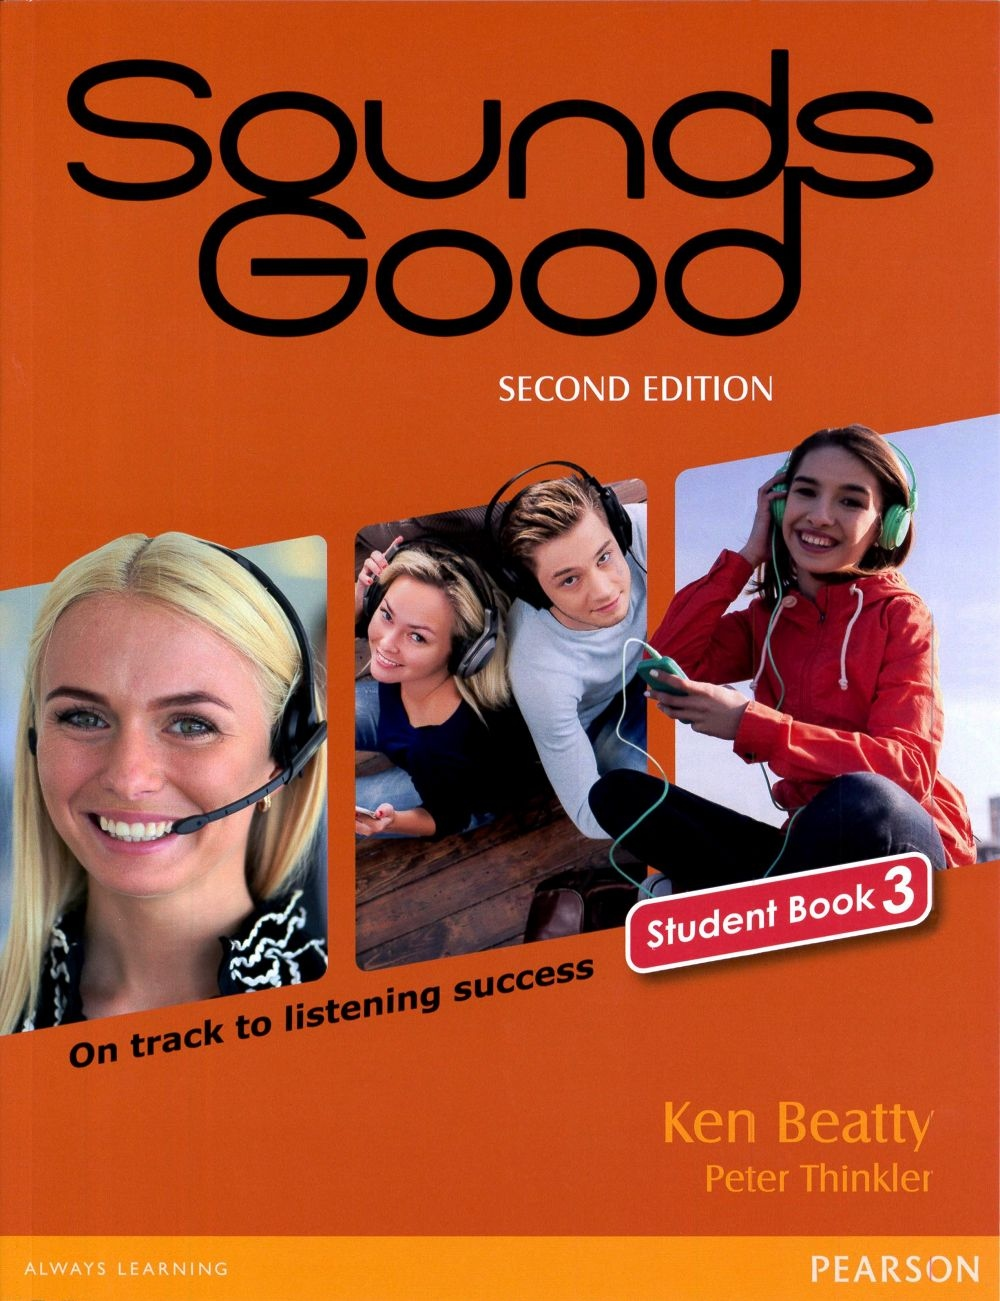 Sounds Good 2/e (3) Student Book